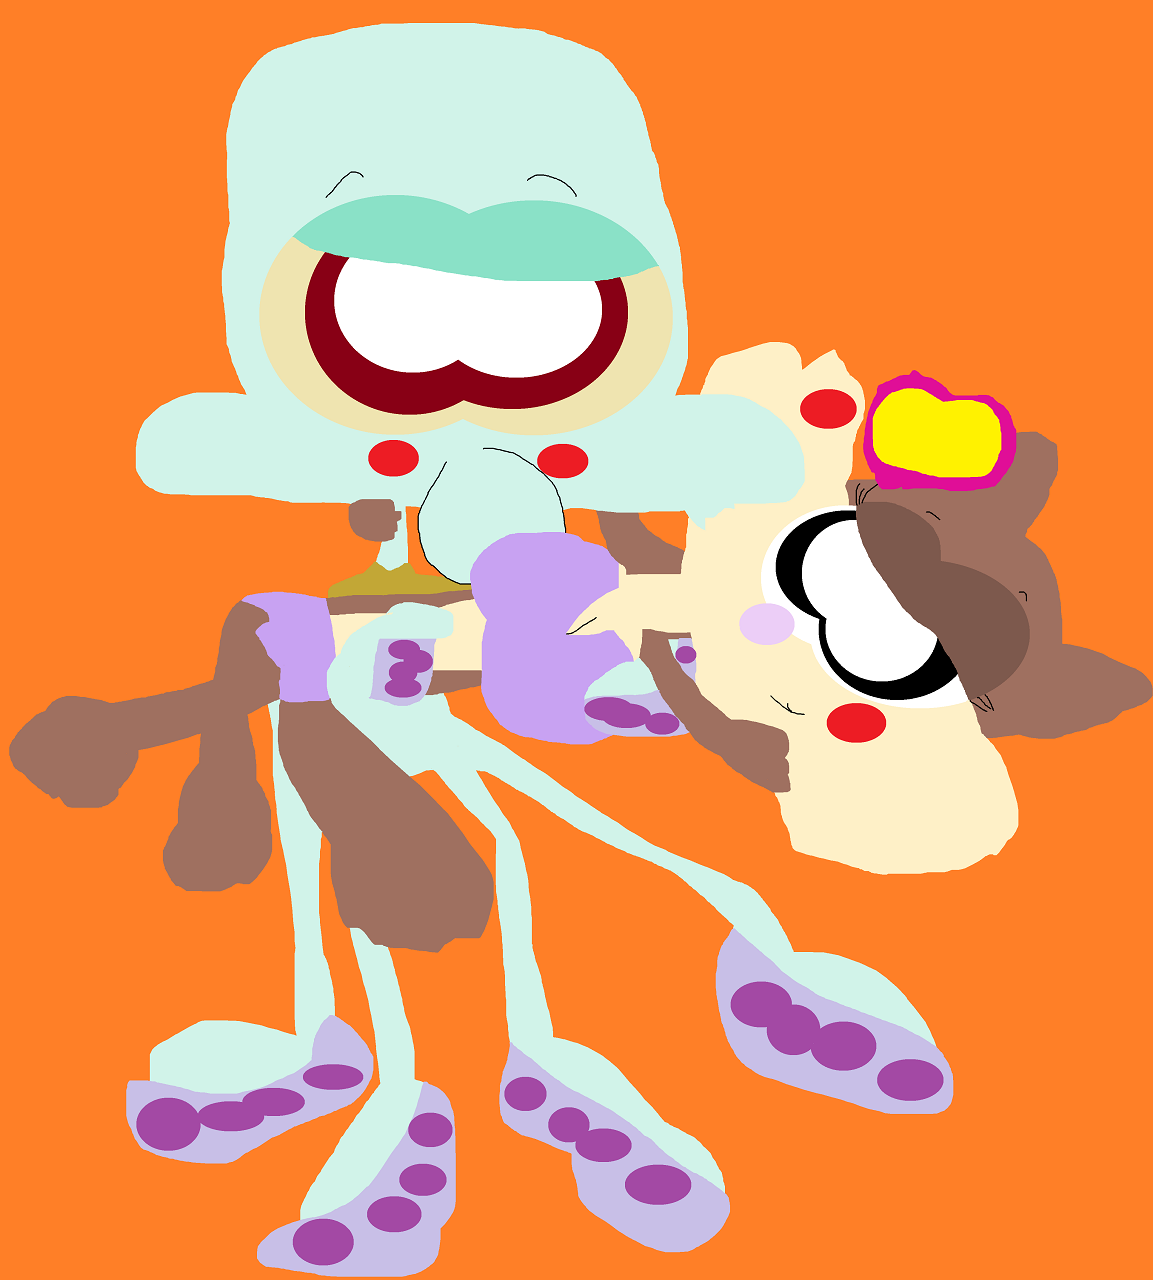 Just A Random Squidward Holding Sandy Again Alt by Falconlobo